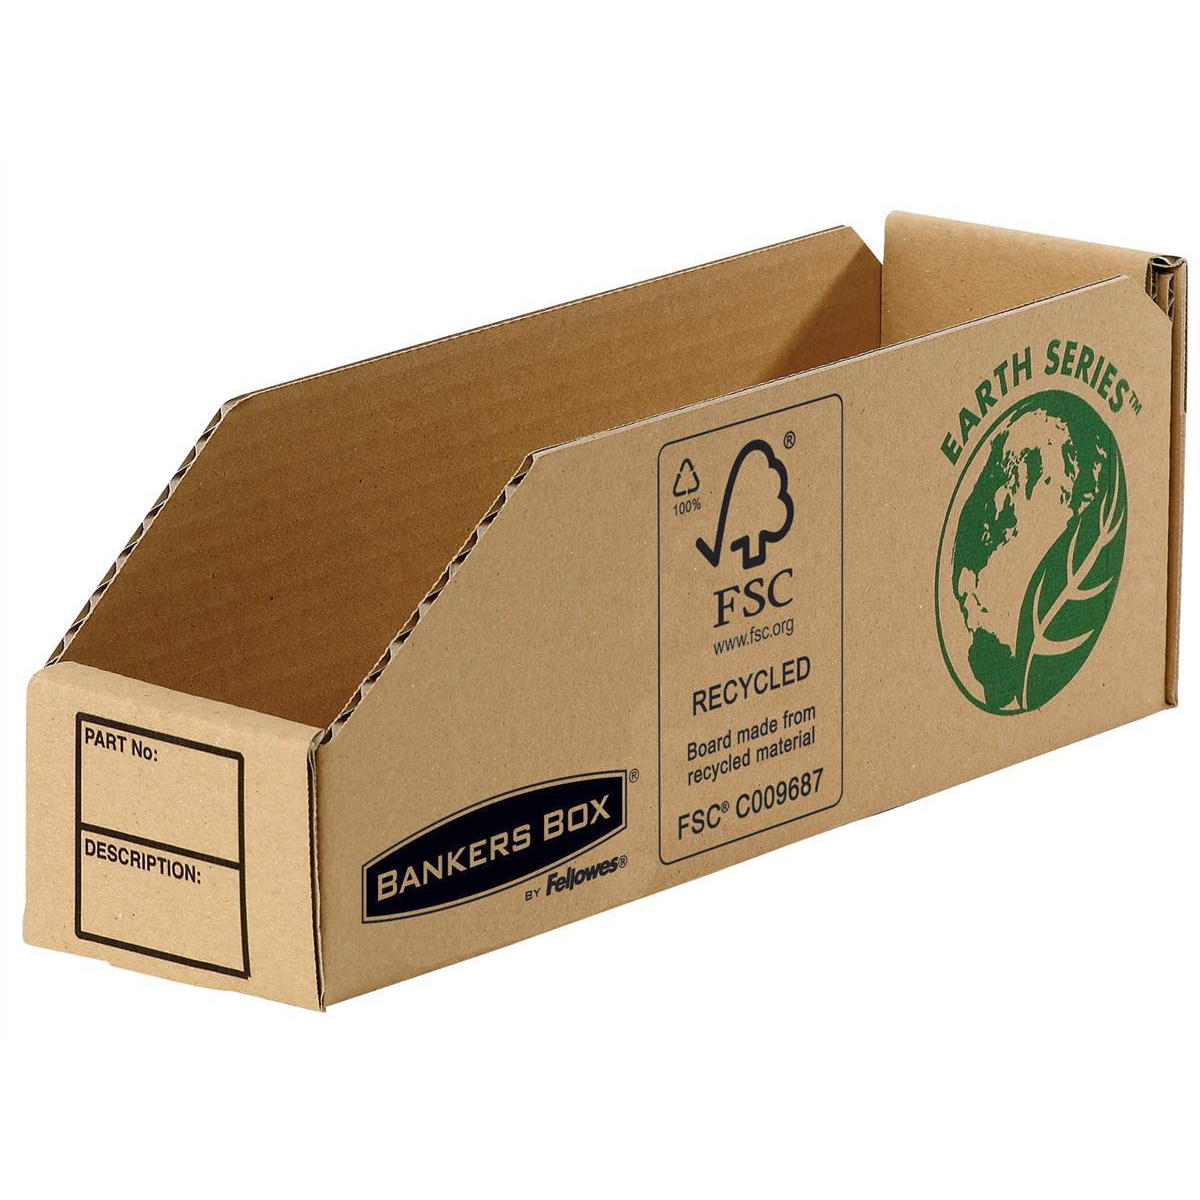 Containers Bankers Box by Fellowes Parts Bin Corrugated Fibreboard Packed Flat W76xD280xH102mm Ref 07352 [Pack 50]